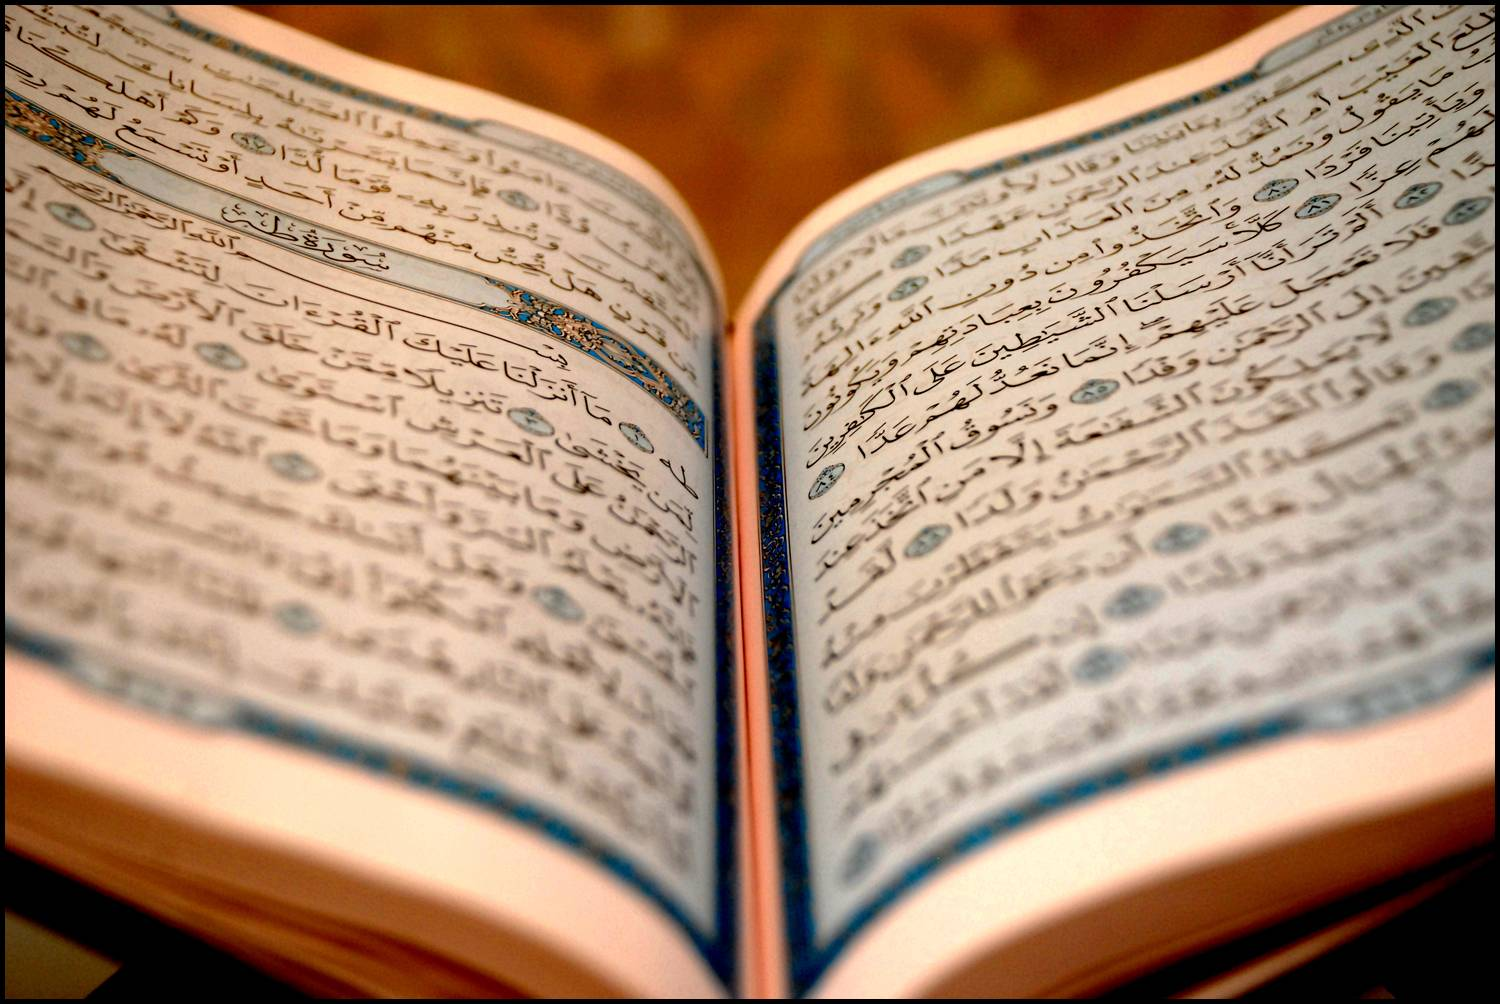 59 examples of how the Quran tells Muslims to behave - The